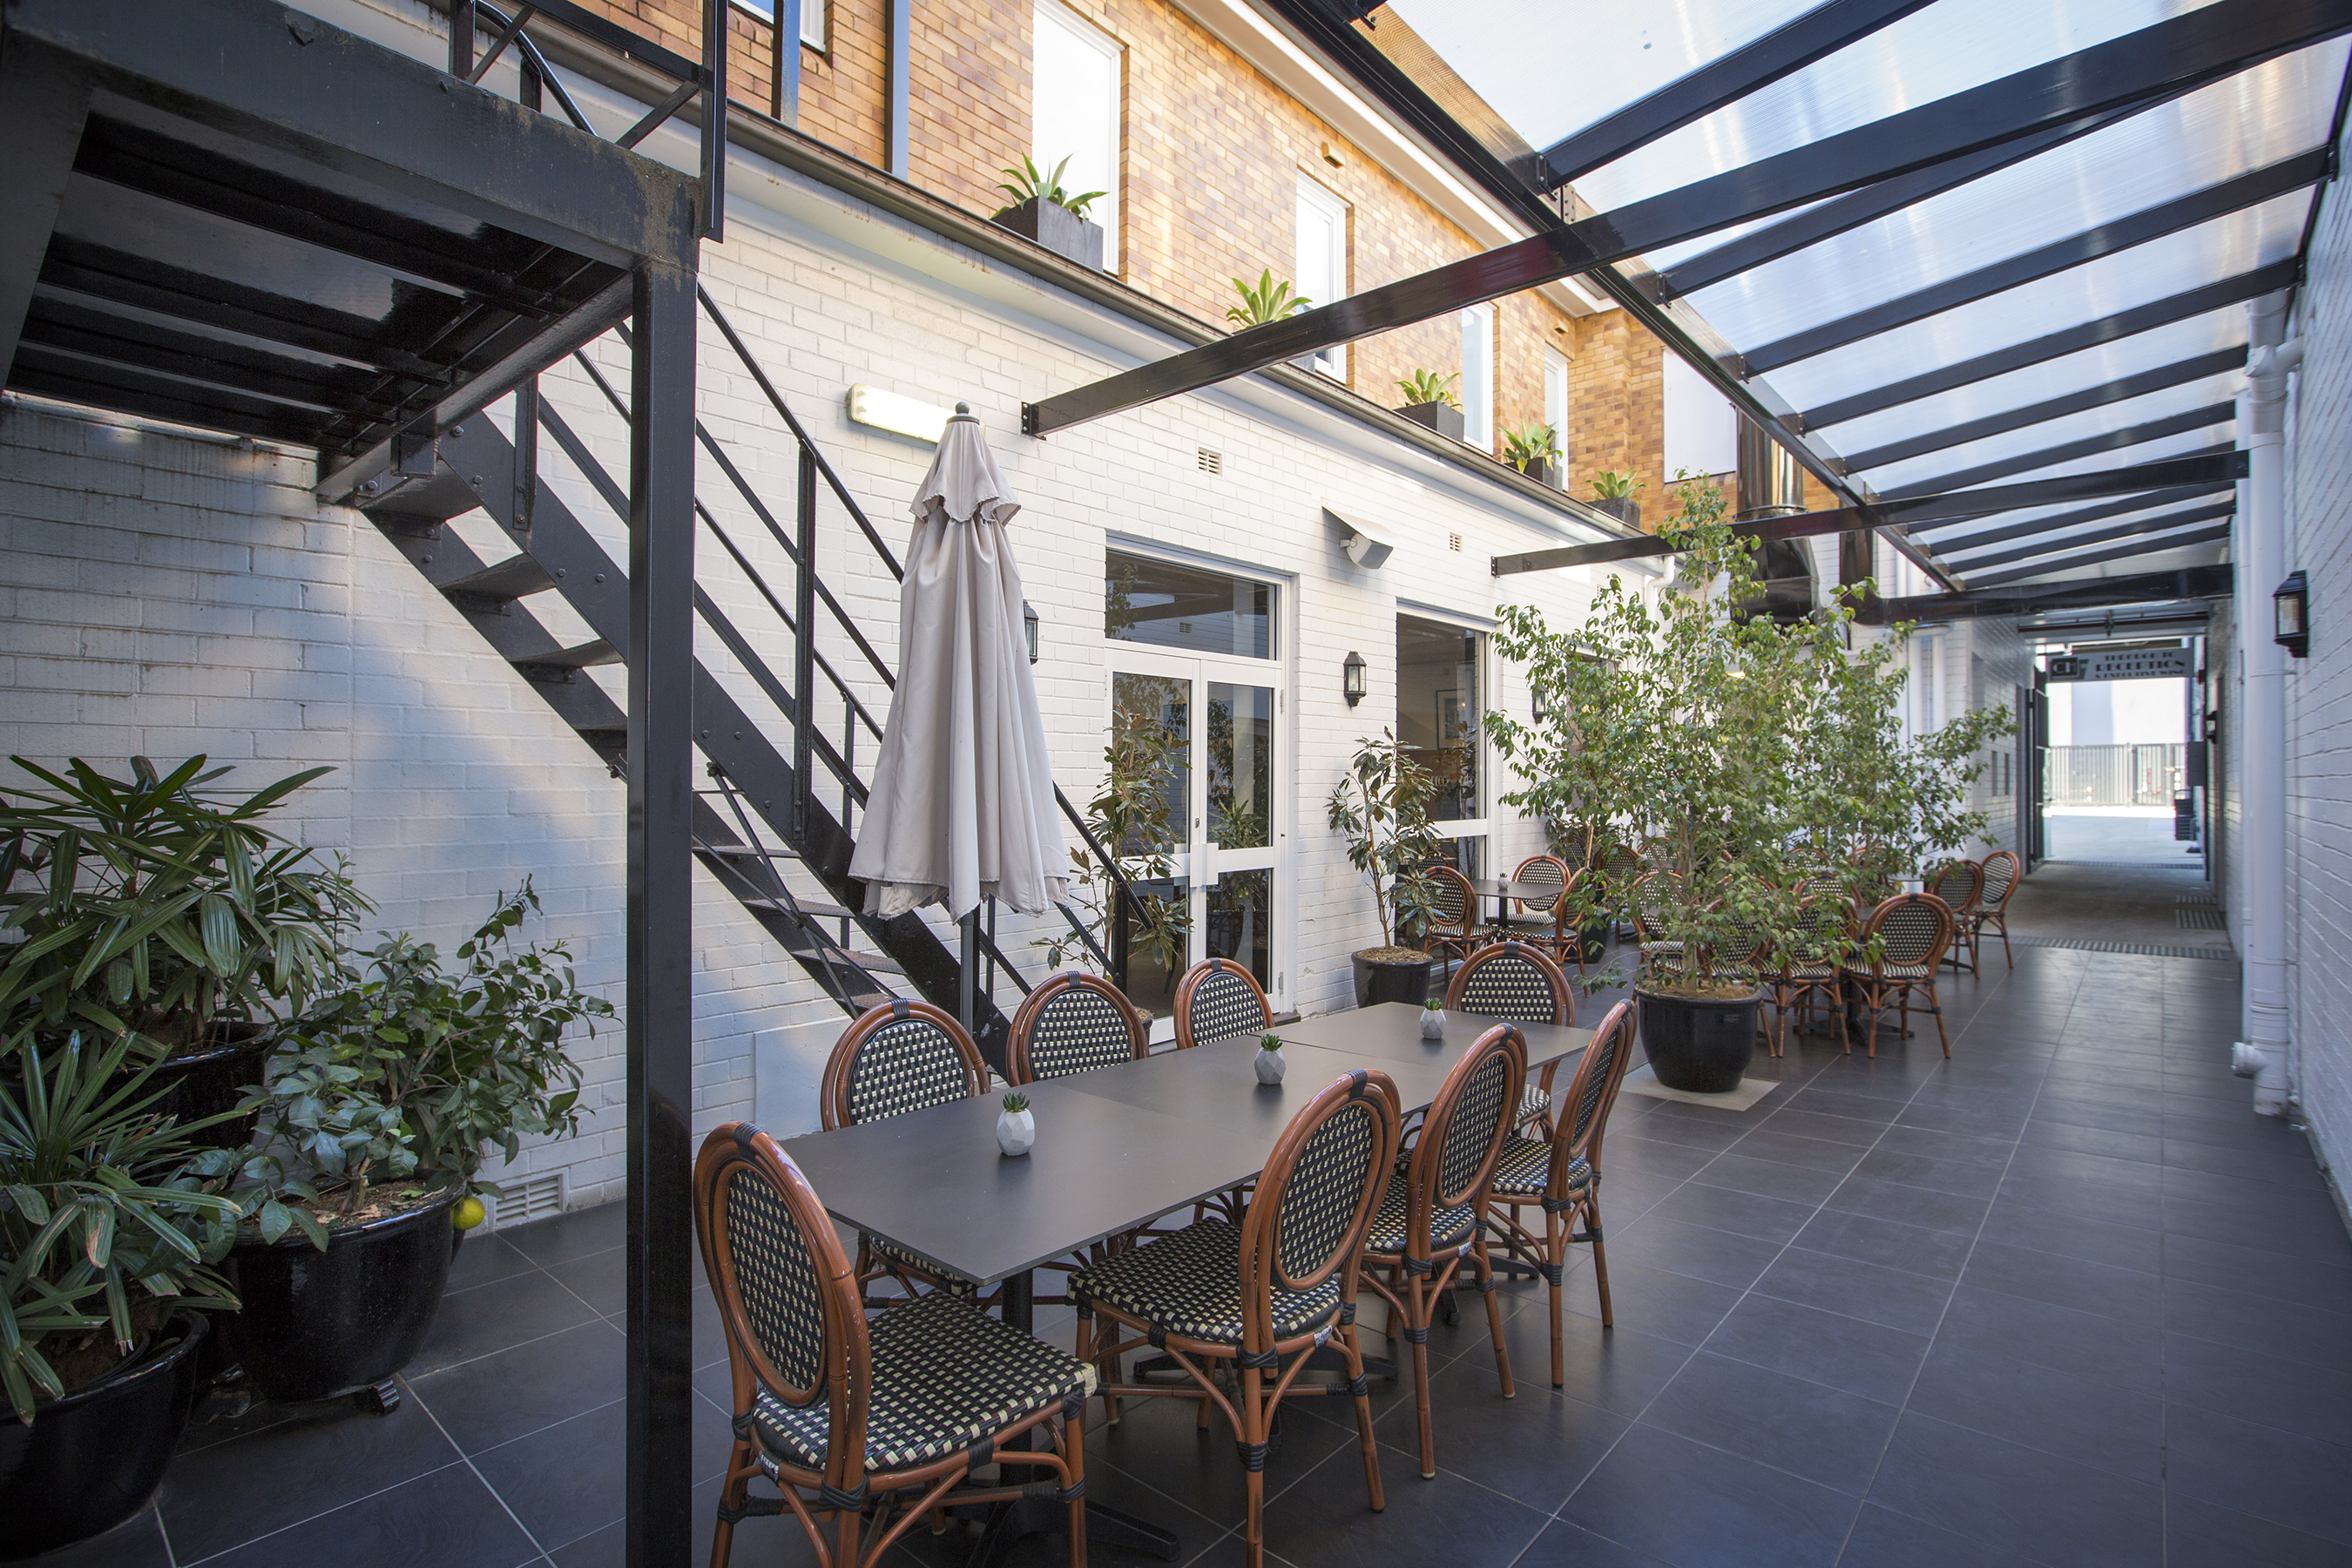 DECO Wine Bar & Restaurant Courtyard